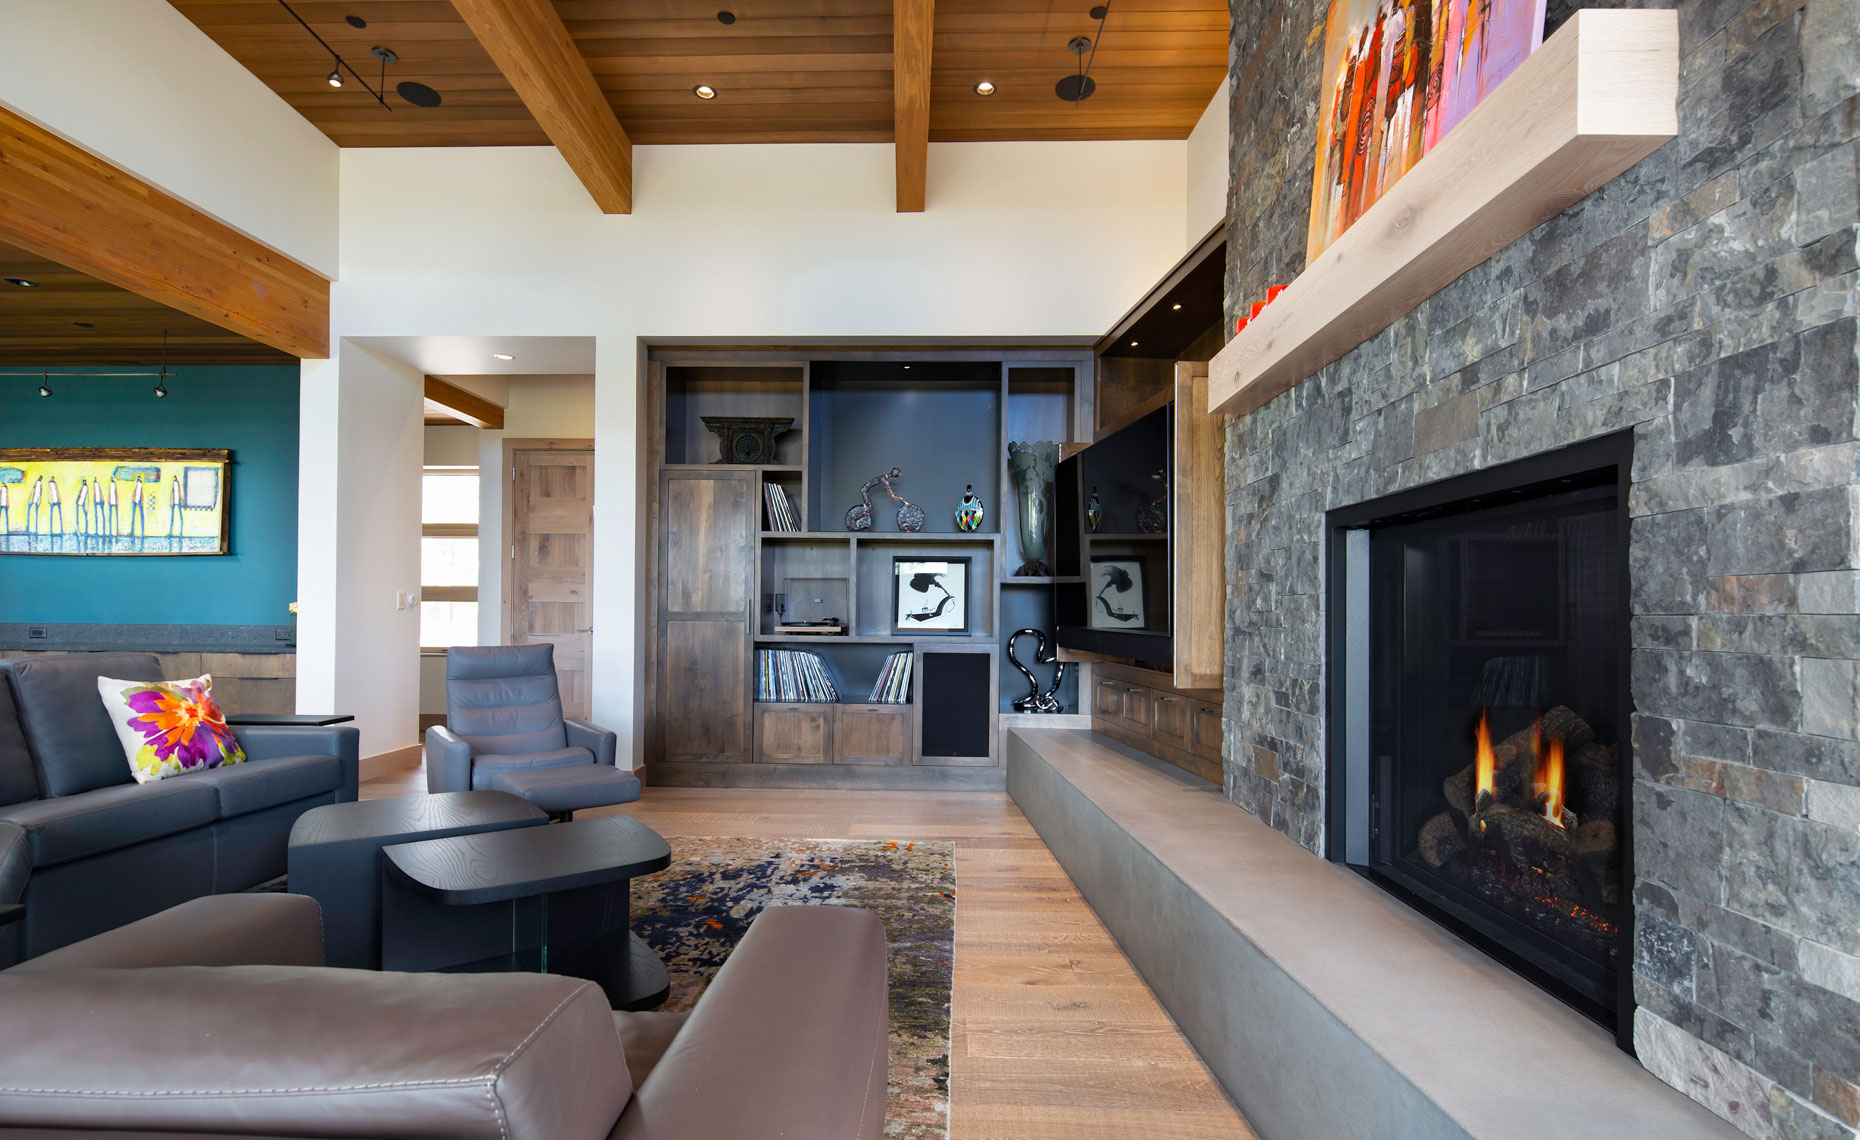 POD-HOUSE-LOUNGE-FIREPLACE